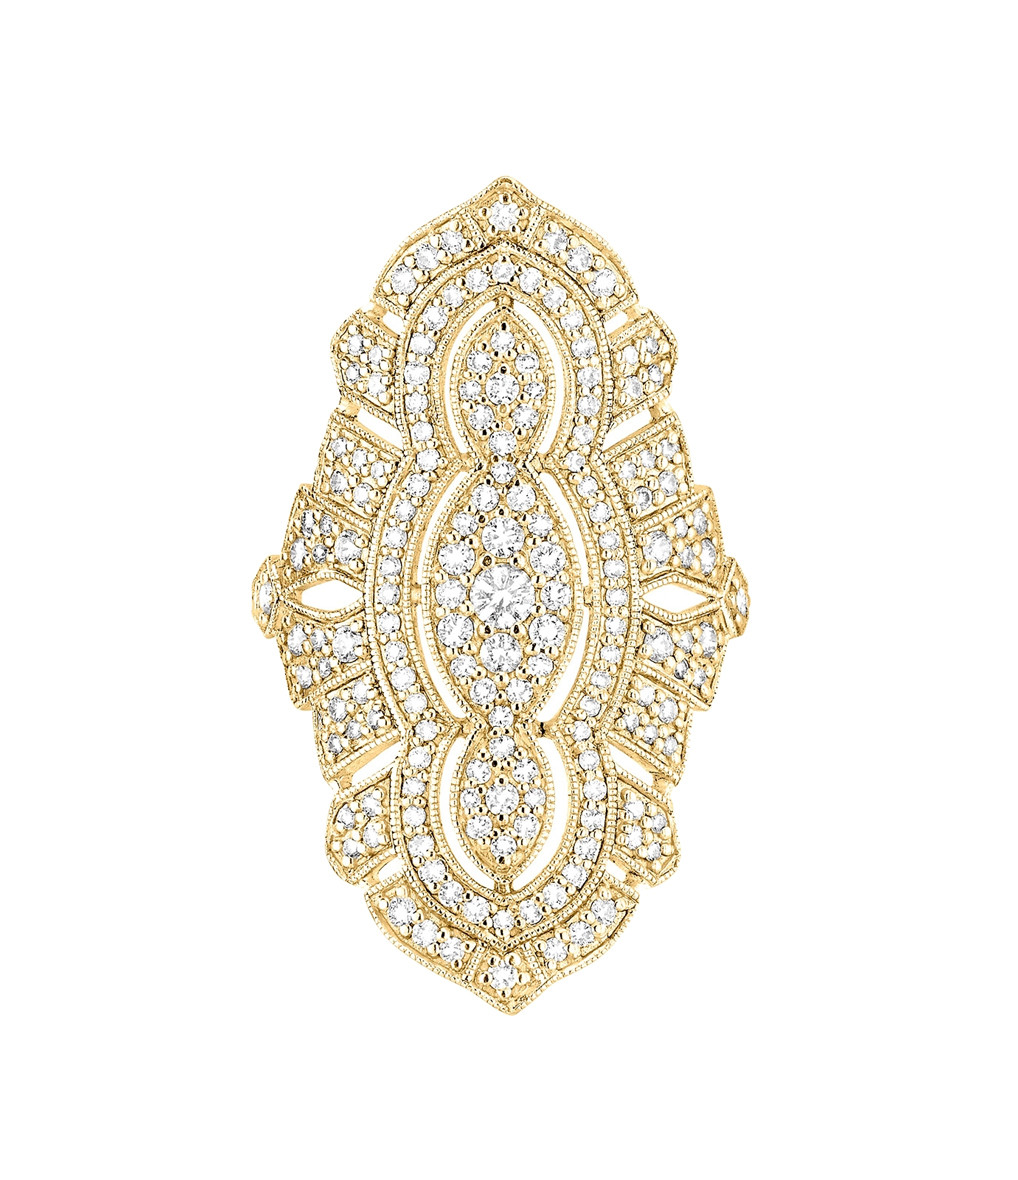 STONE PARIS - Bague Tess Or Diamants